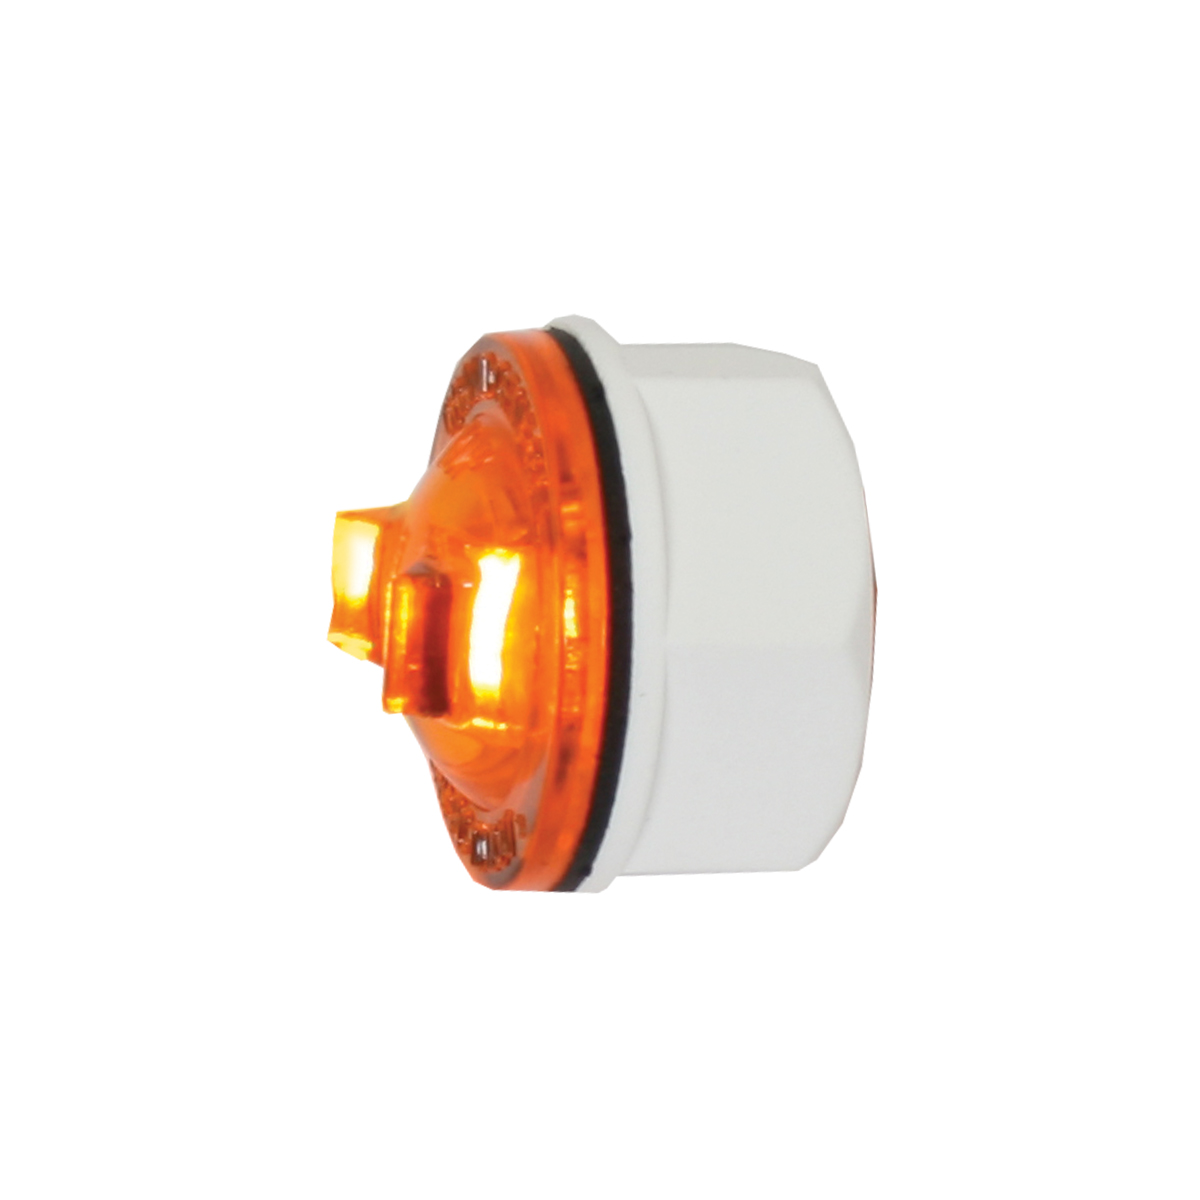 "87280 1"" Mini Push/Screw-in Wide Angle LED Light"